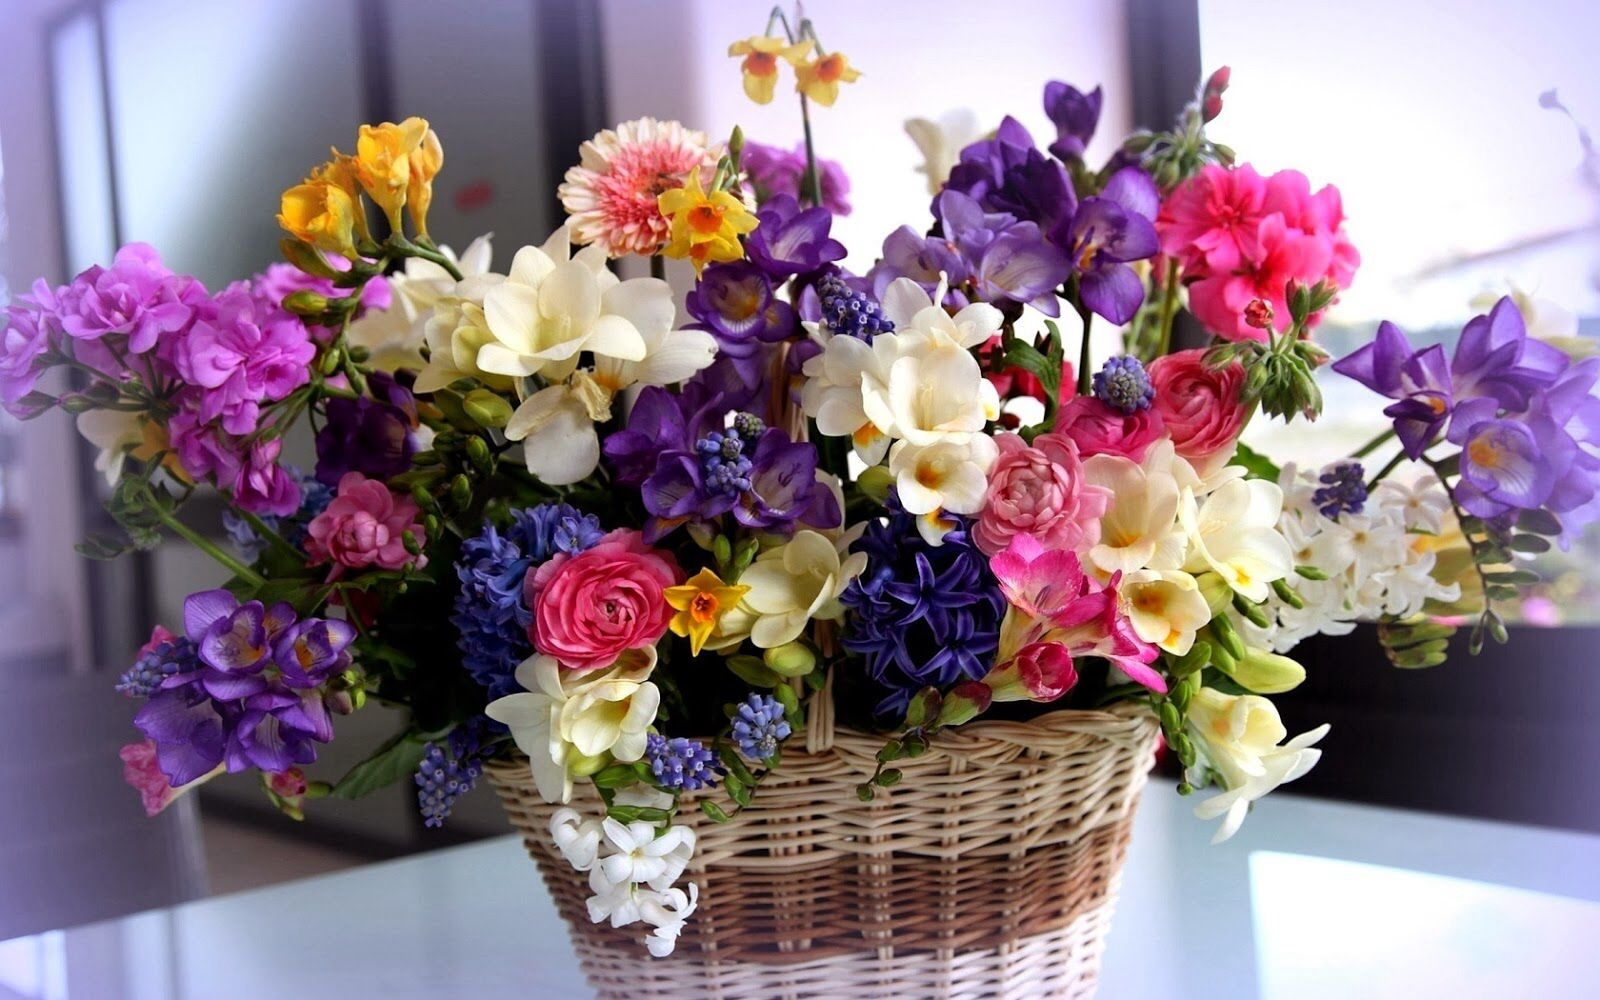 Pin by sheila troppe on beautiful blossoms pinterest flowers beautiful flowers beautiful flower arrangements bouquet on table beautiful bouquet of flower arrangement beautiful flower bouquet images pictures of izmirmasajfo